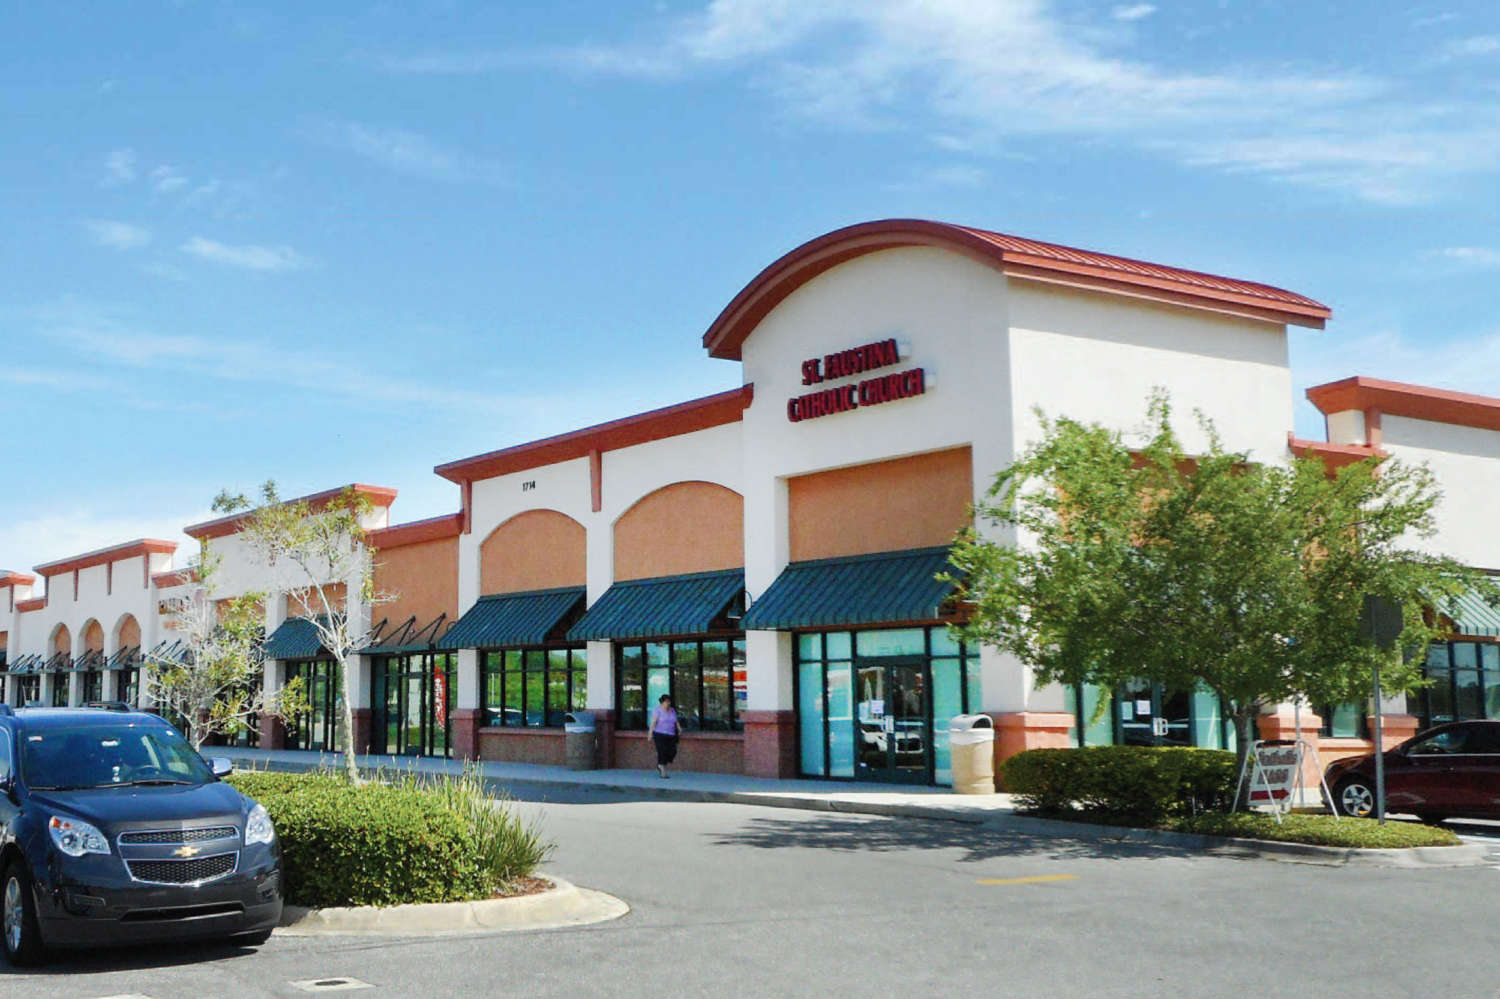 CRC Acquires 64,000 SF Shopping Center Near Orlando, FL for $6.6M -